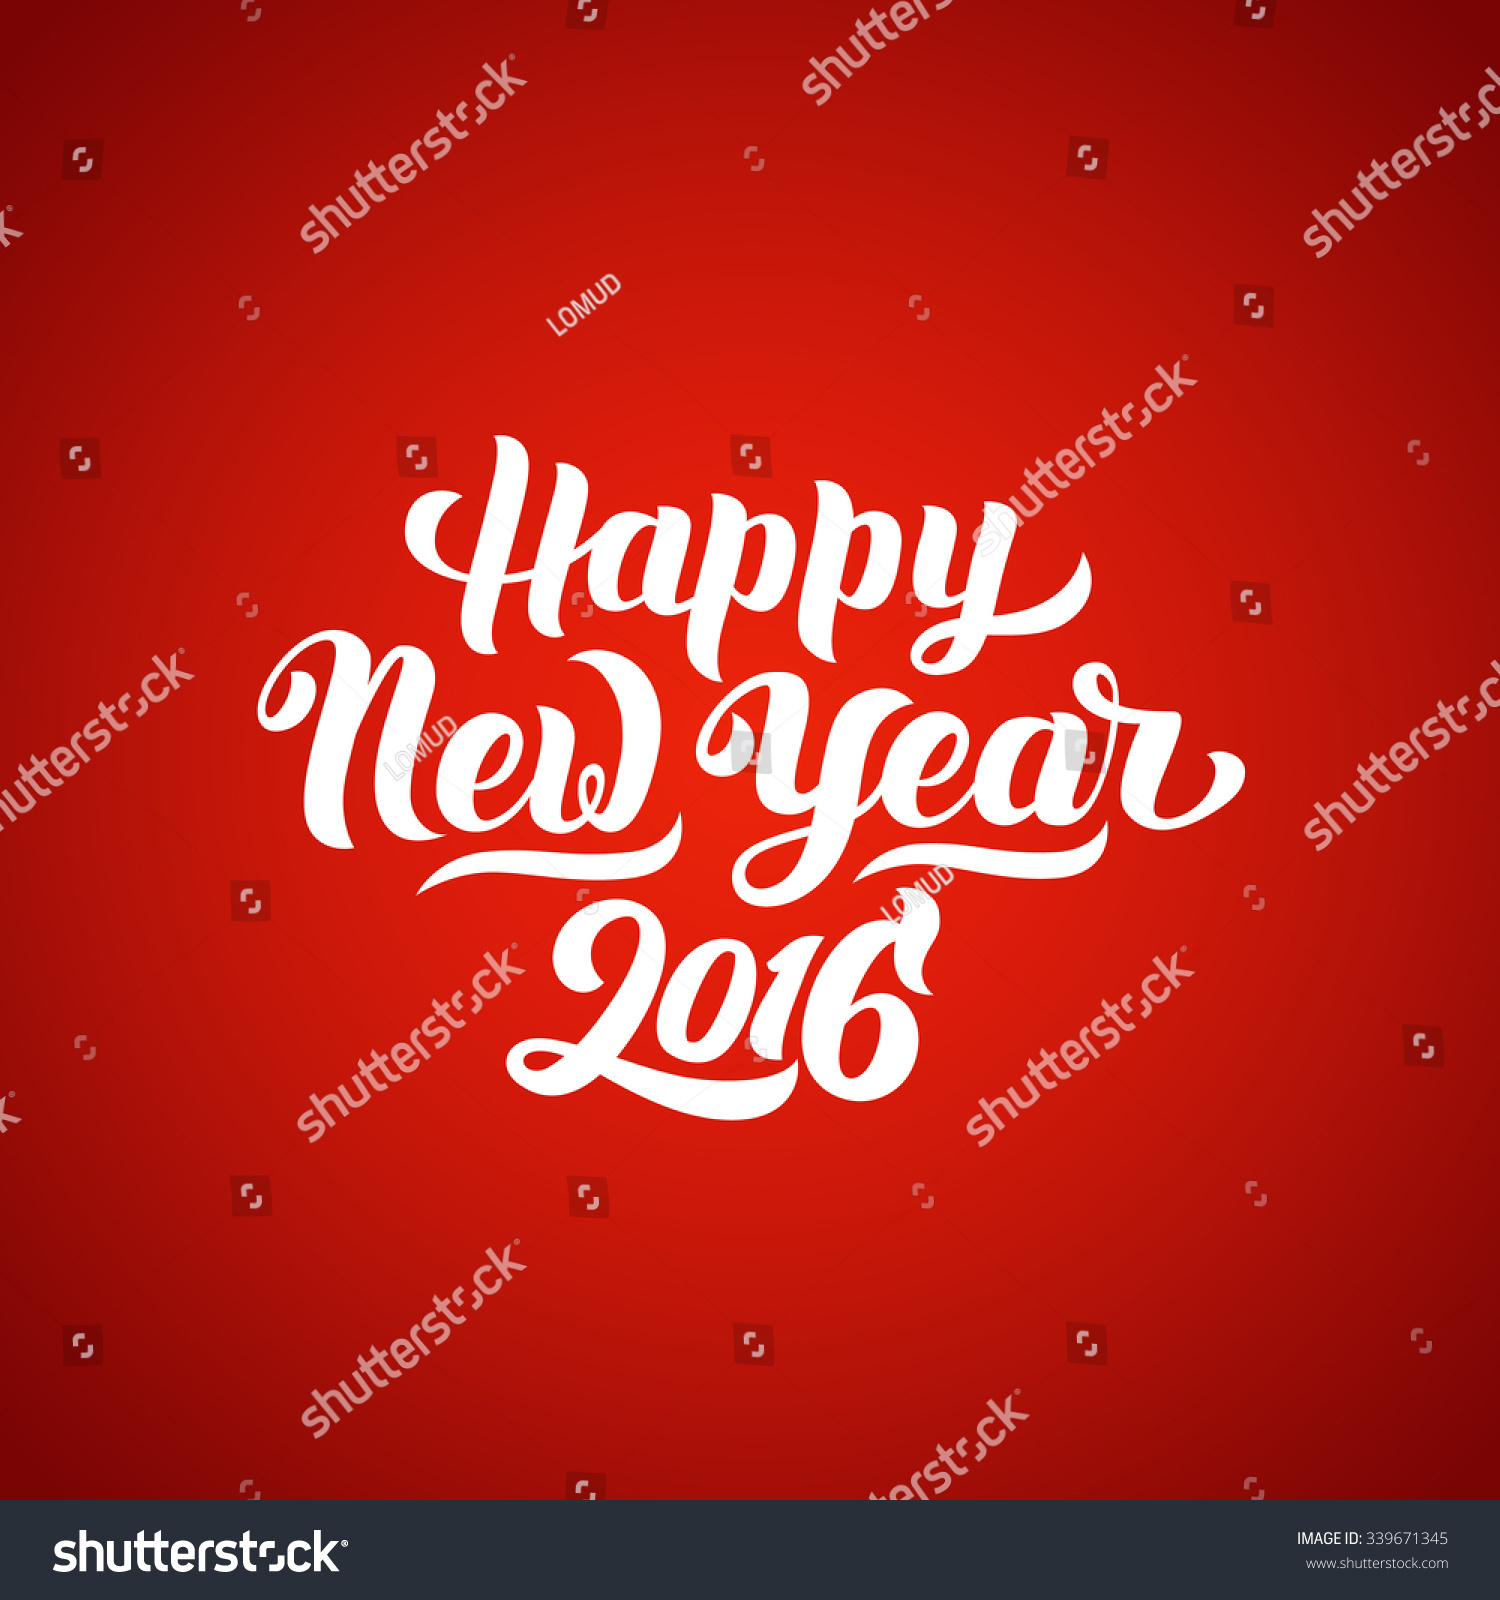 Happy New Year 2016 Handlettering Text Stock Vector